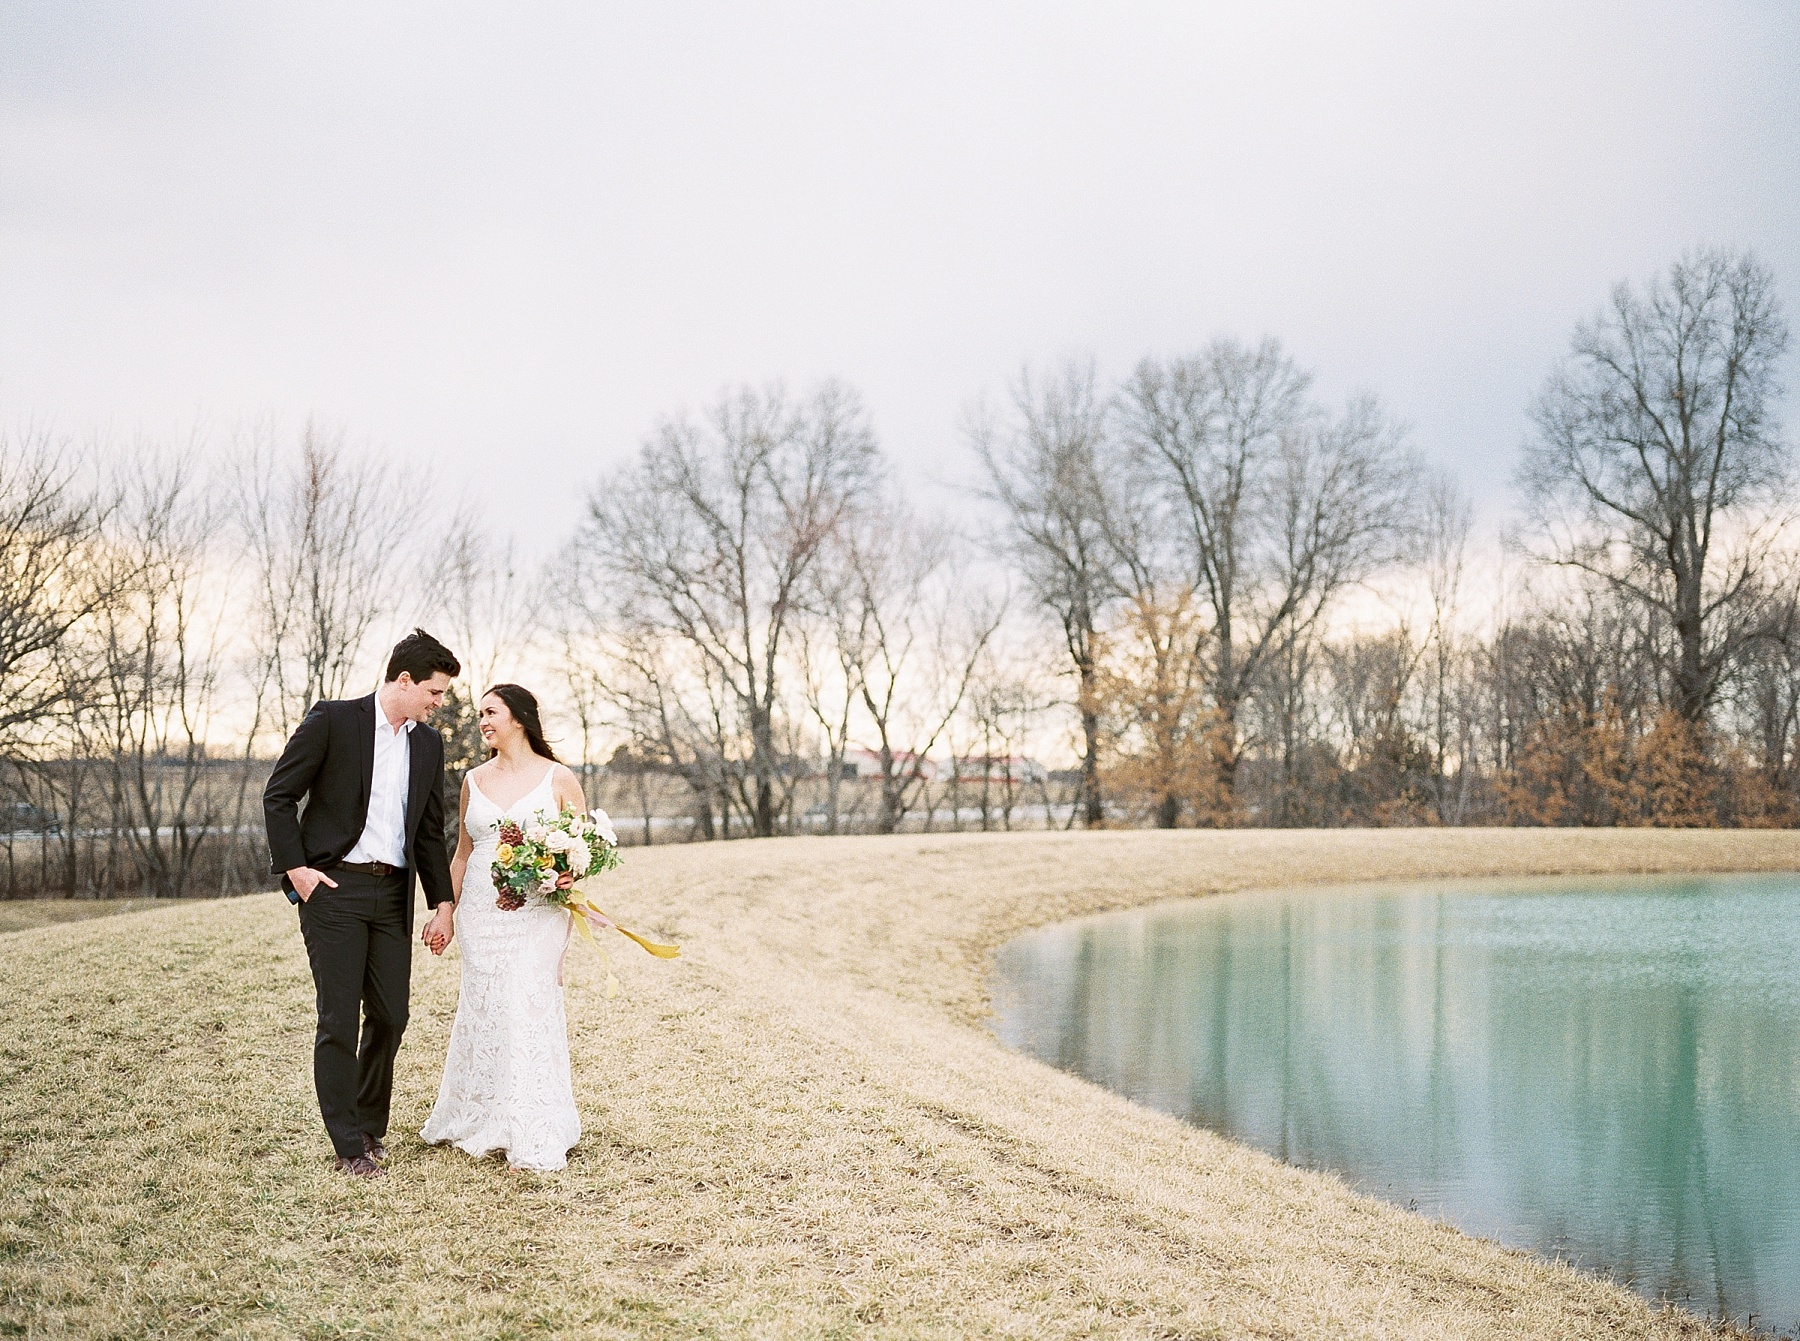 Intimate Lakeside Elopement at Emerson Fields All White Wedding Venue by Kelsi Kliethermes Photography Best Missouri and Maui Wedding Photographer_0027.jpg